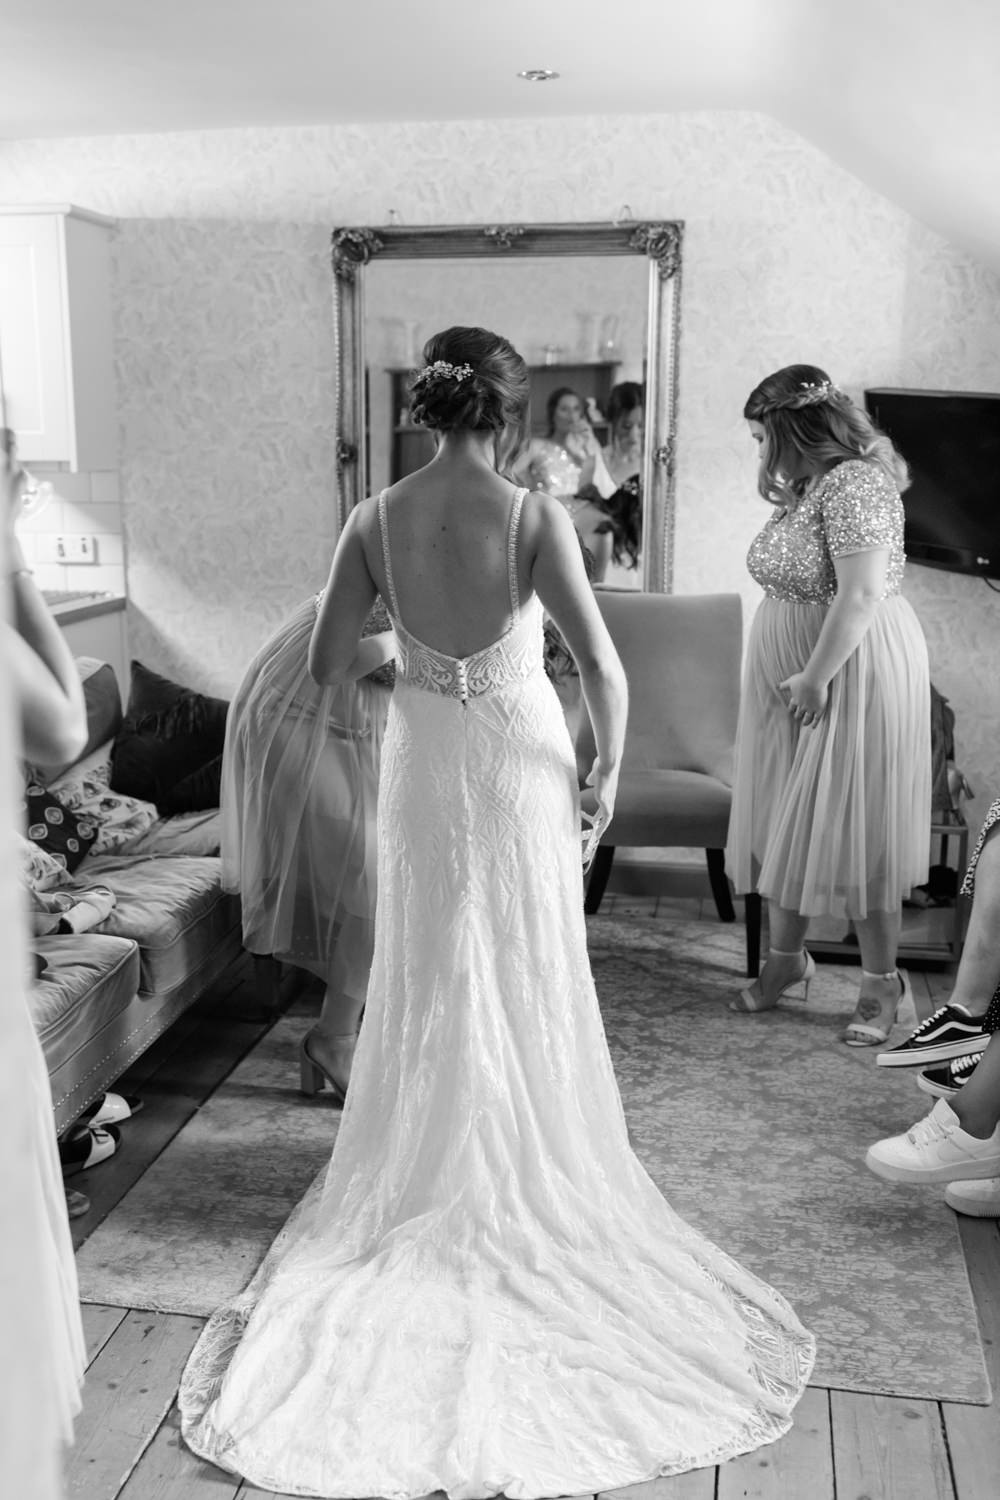 Dress Gown Bride Bridal Kenneth Winston Low Back Doxford Barns Wedding Lara Frost Photography